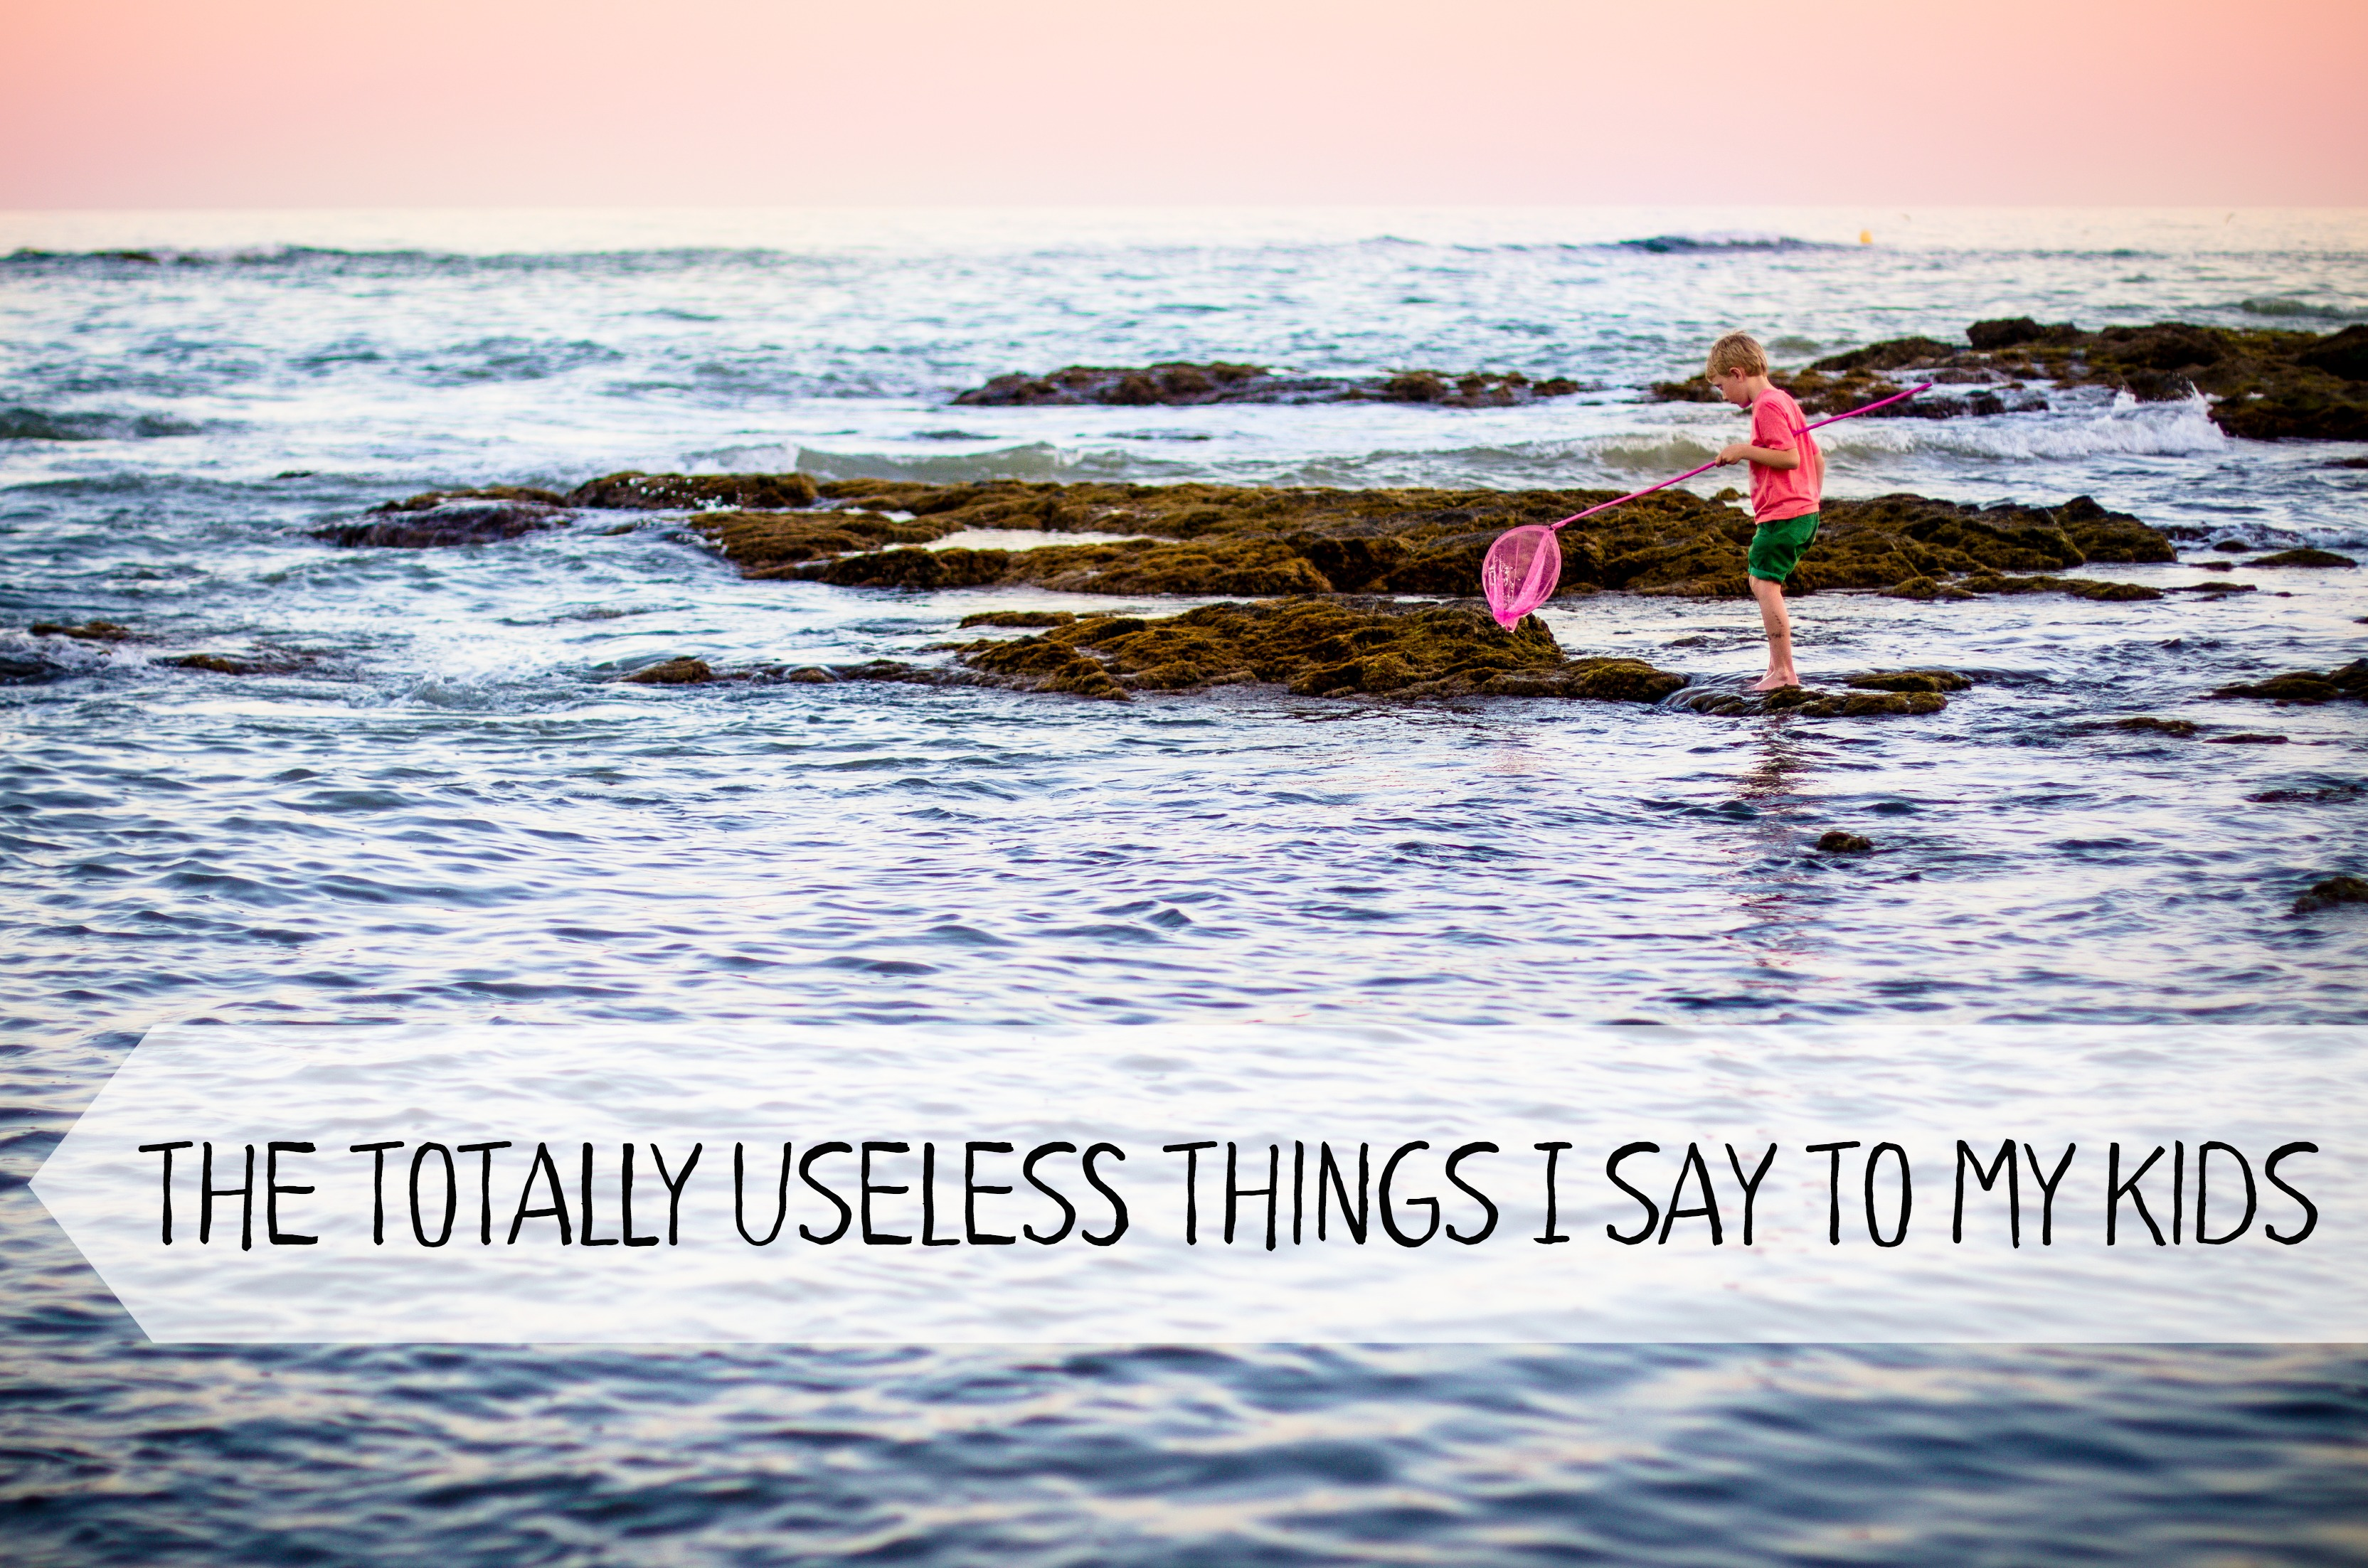 the totally useless things I say to my kids by Life on Wallace